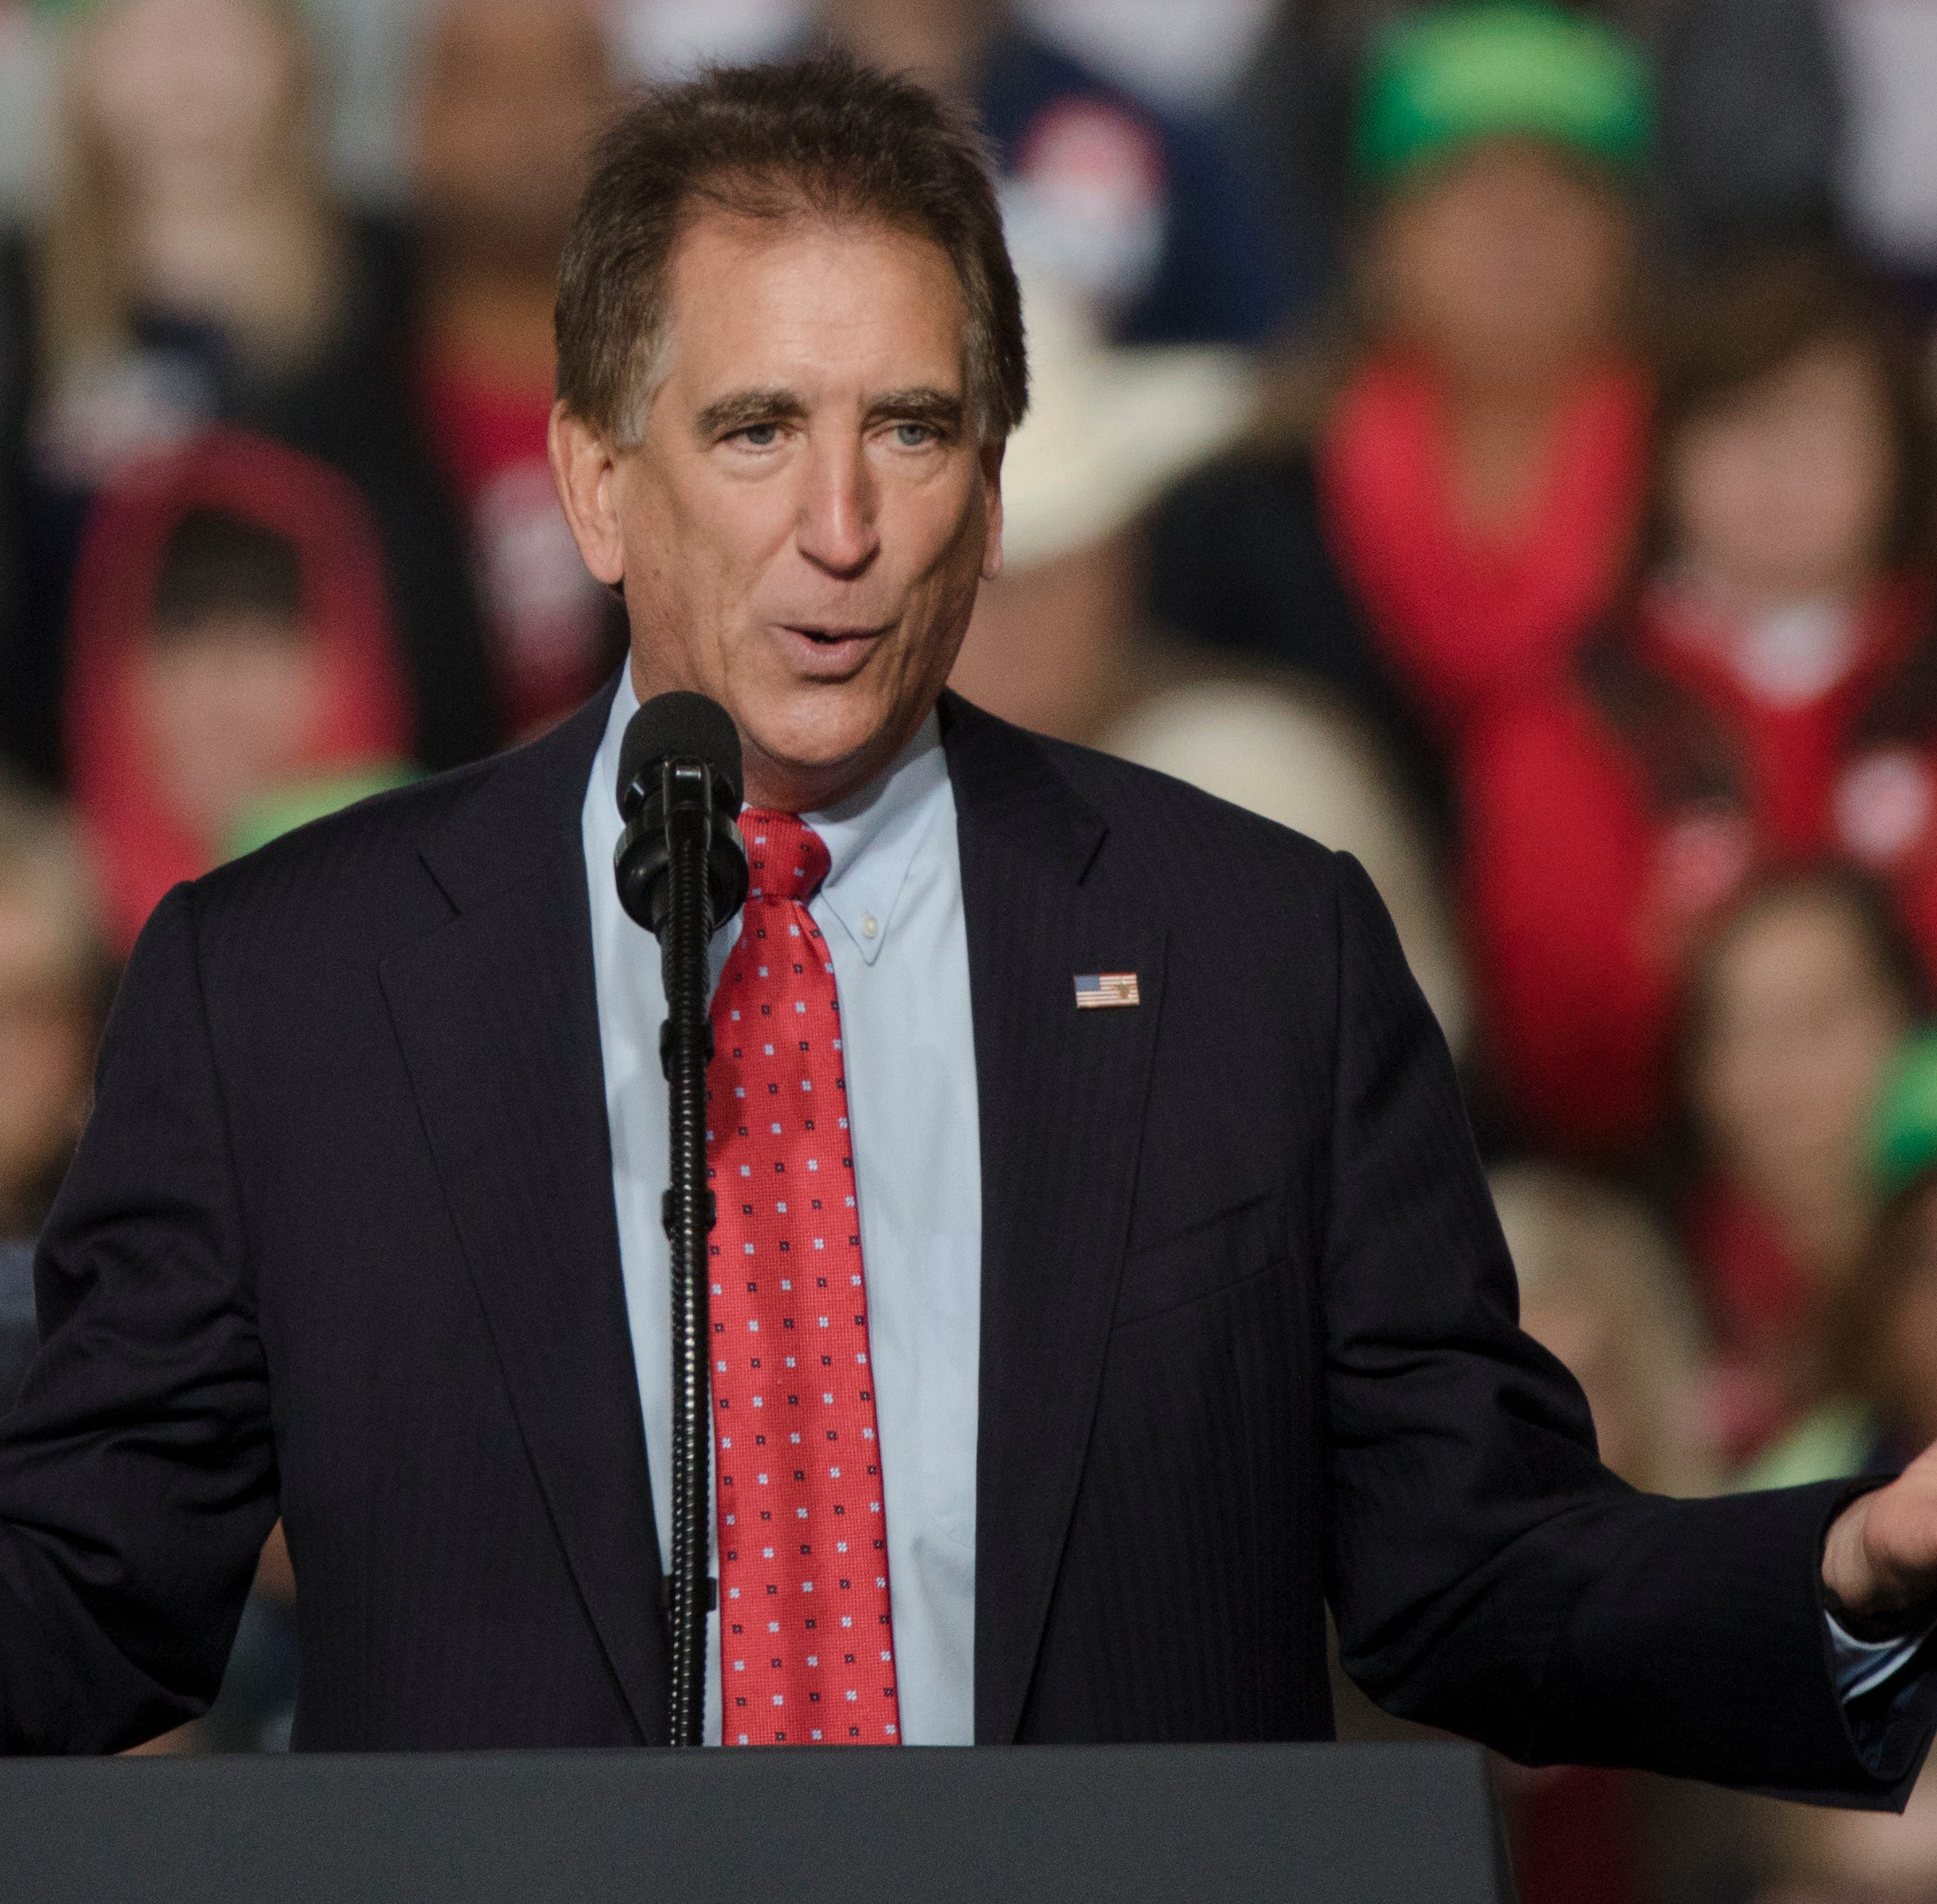 PX column: Trump wannabe Jim Renacci effectively pulls the plug on weak U.S. Senate campaign